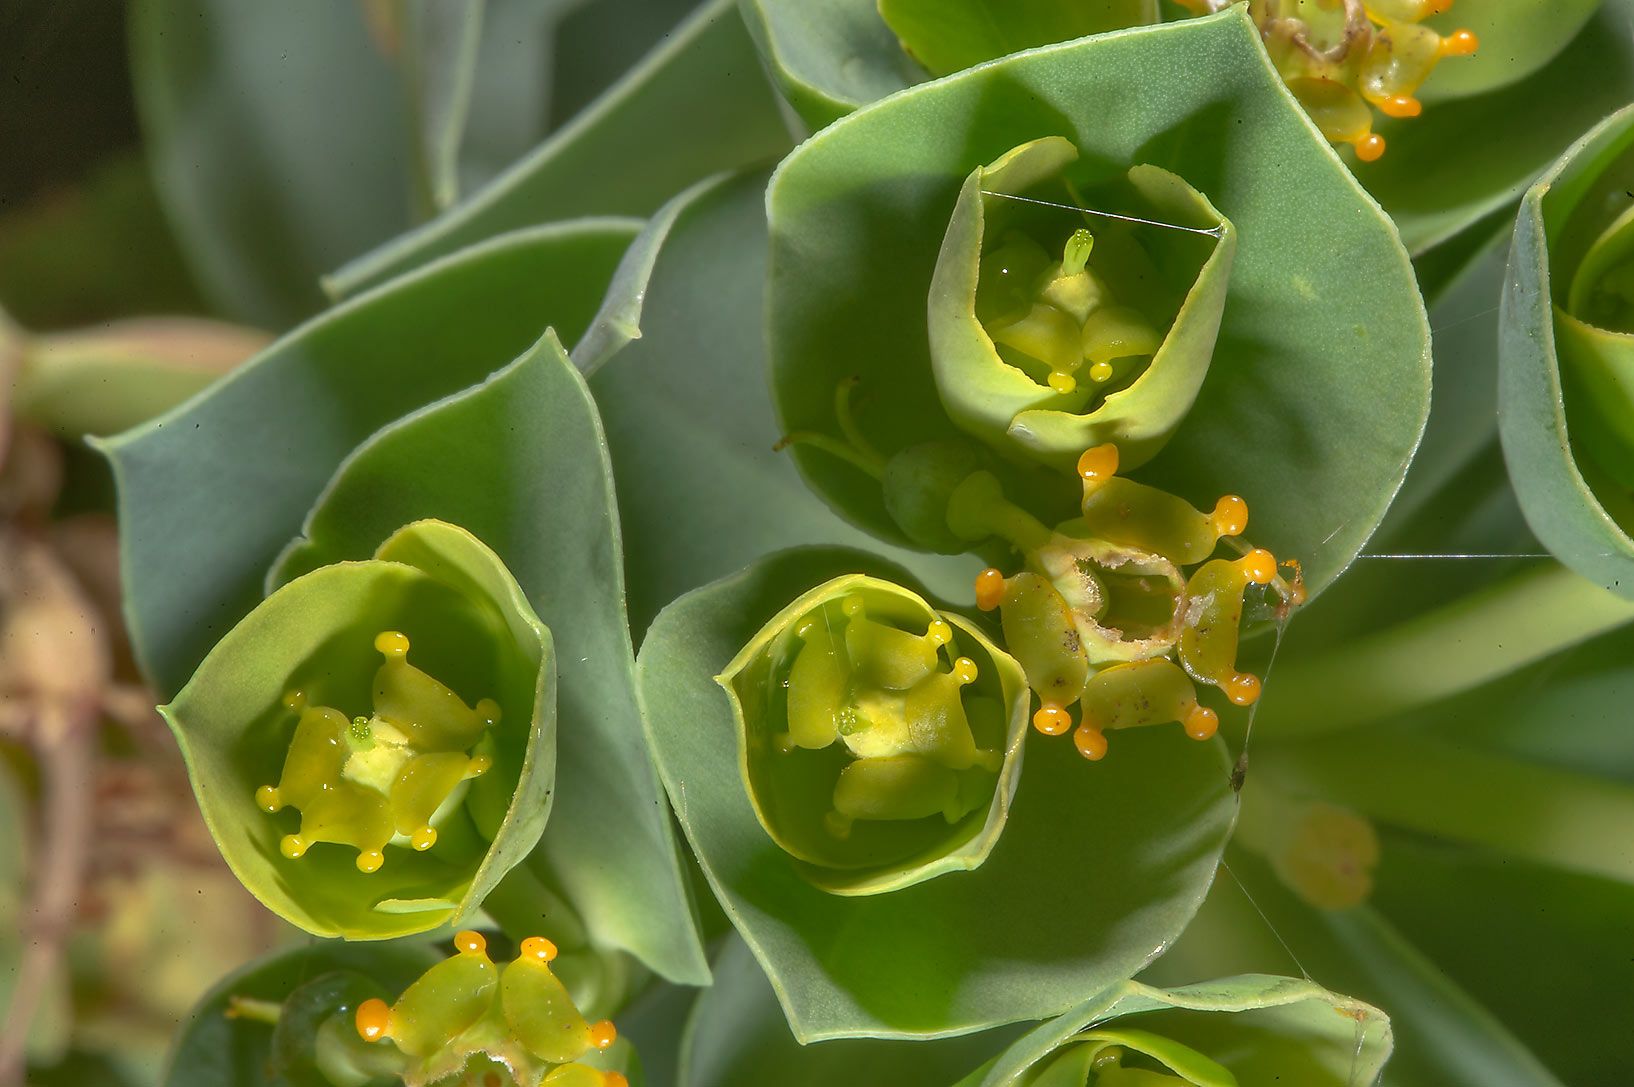 Flowers of myrtle spurge (Euphorbia myrsinites...Institute. St.Petersburg, Russia